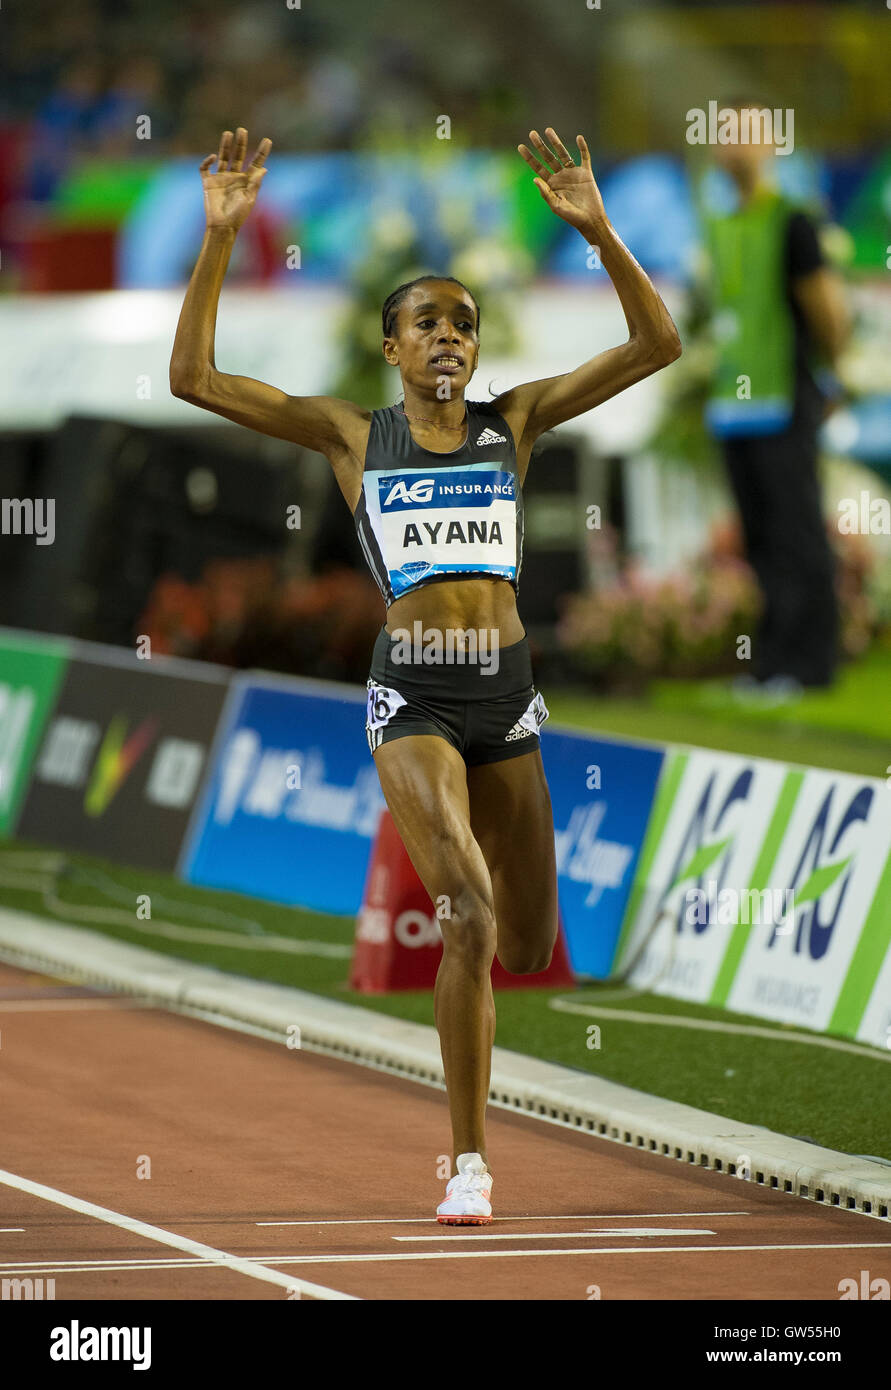 BRUSSELS, BELGIUM - SEPTEMBER 9:  Ayana Almaz of Ethiopia competes during the 5000m Women of the AG Insurance Memorial - Stock Image